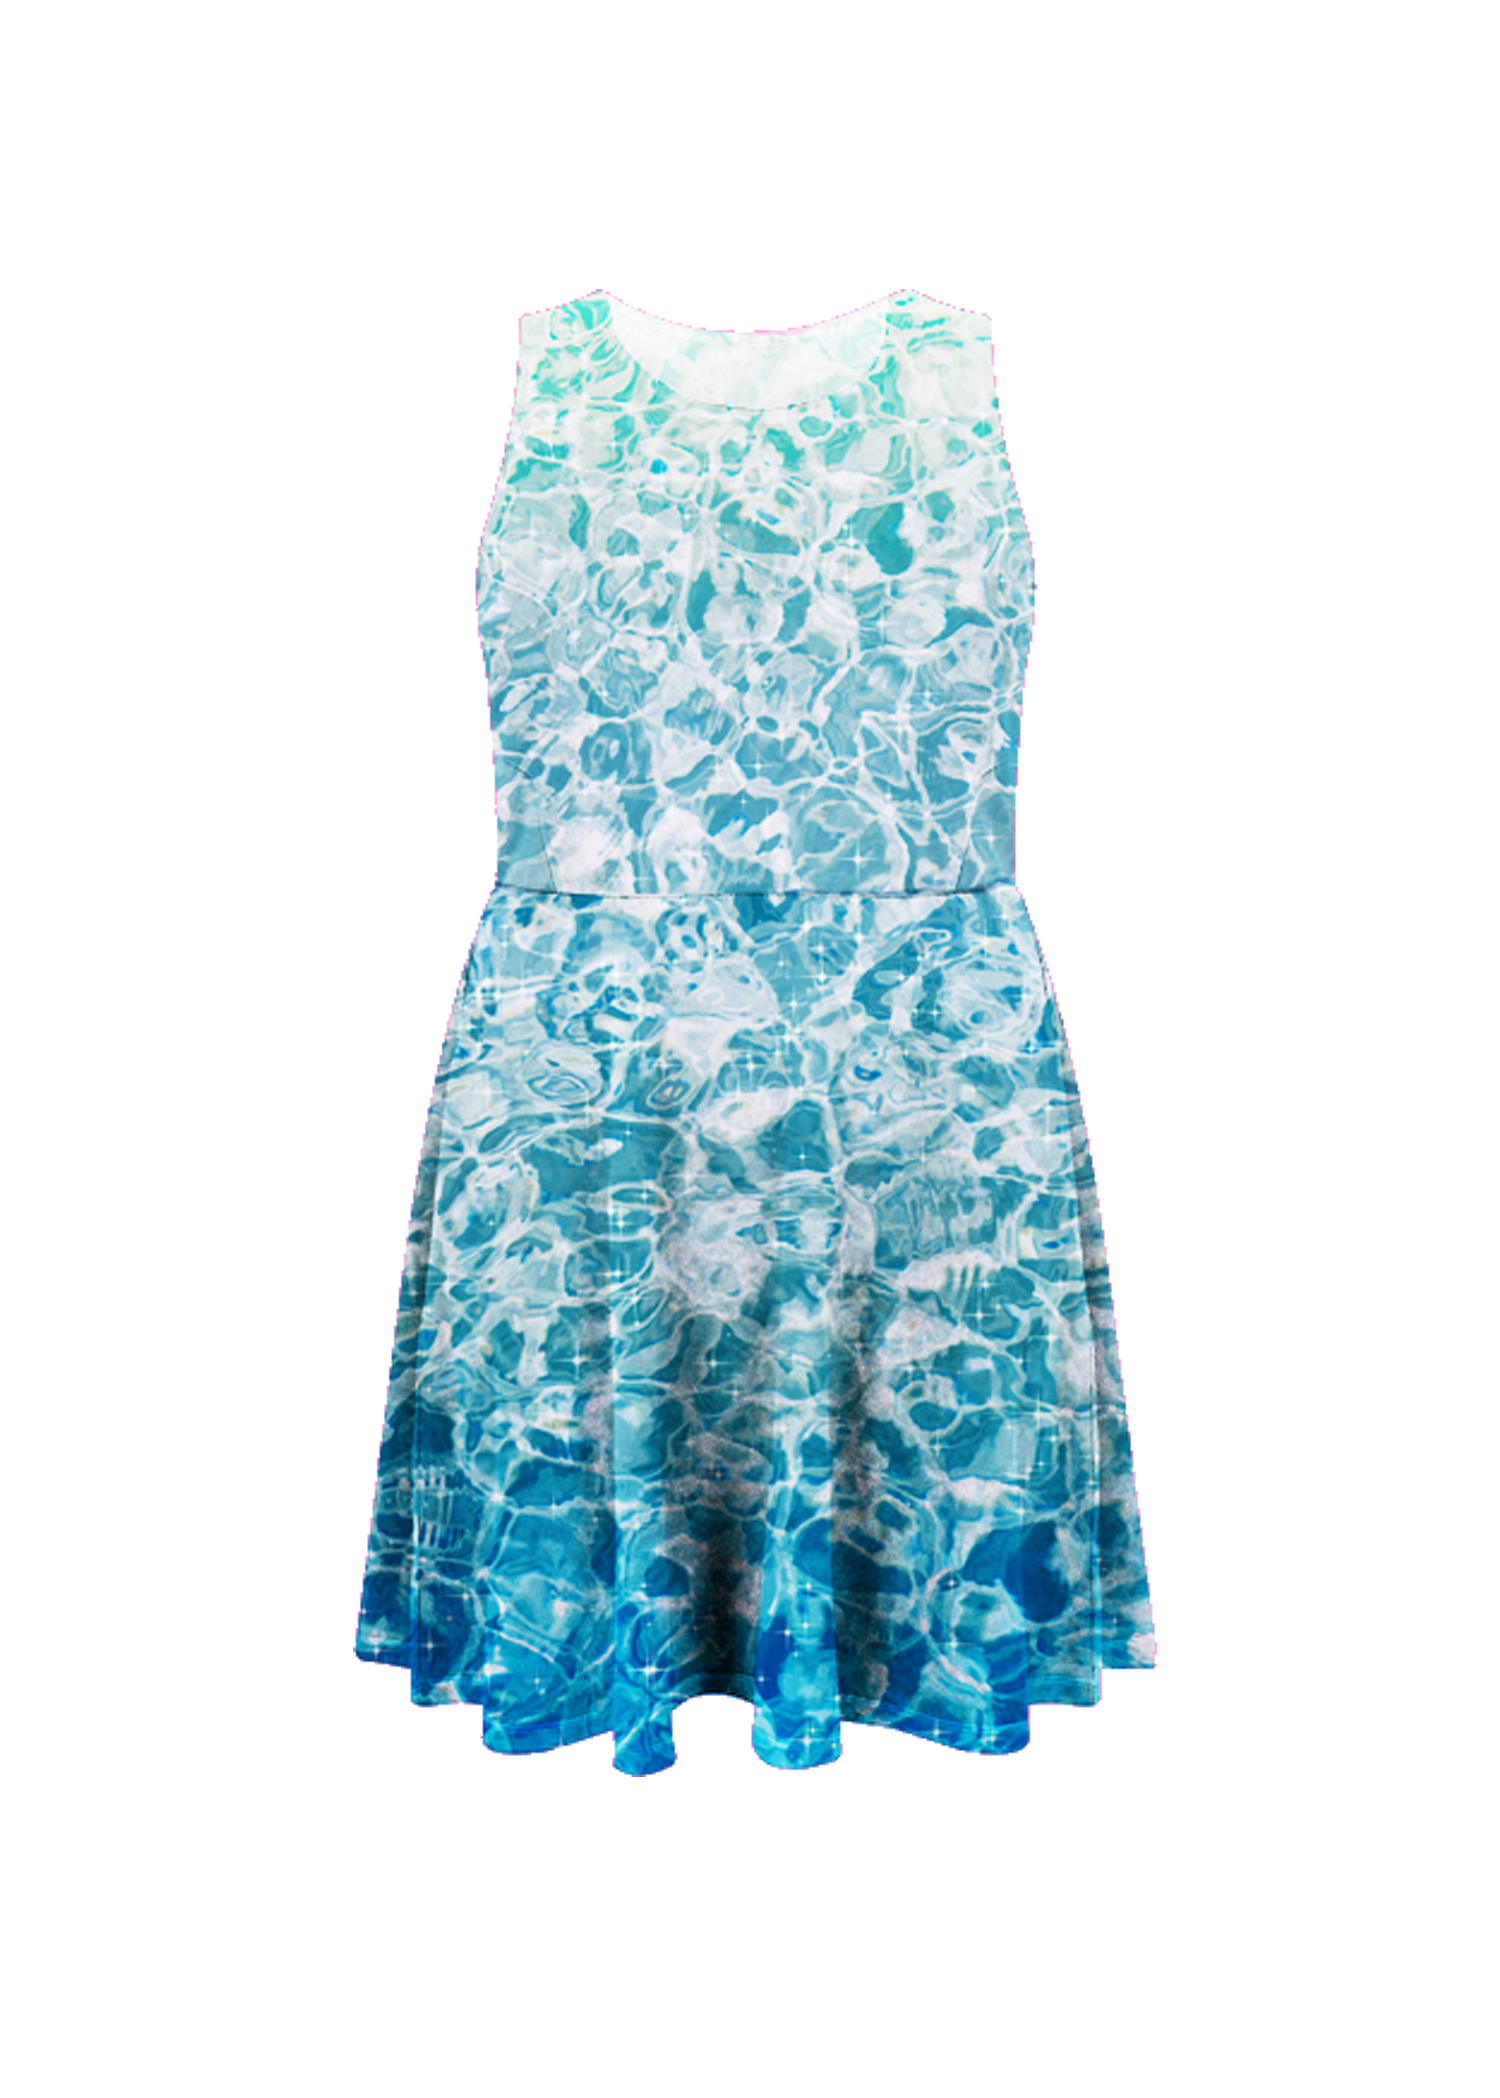 sparkling water dress